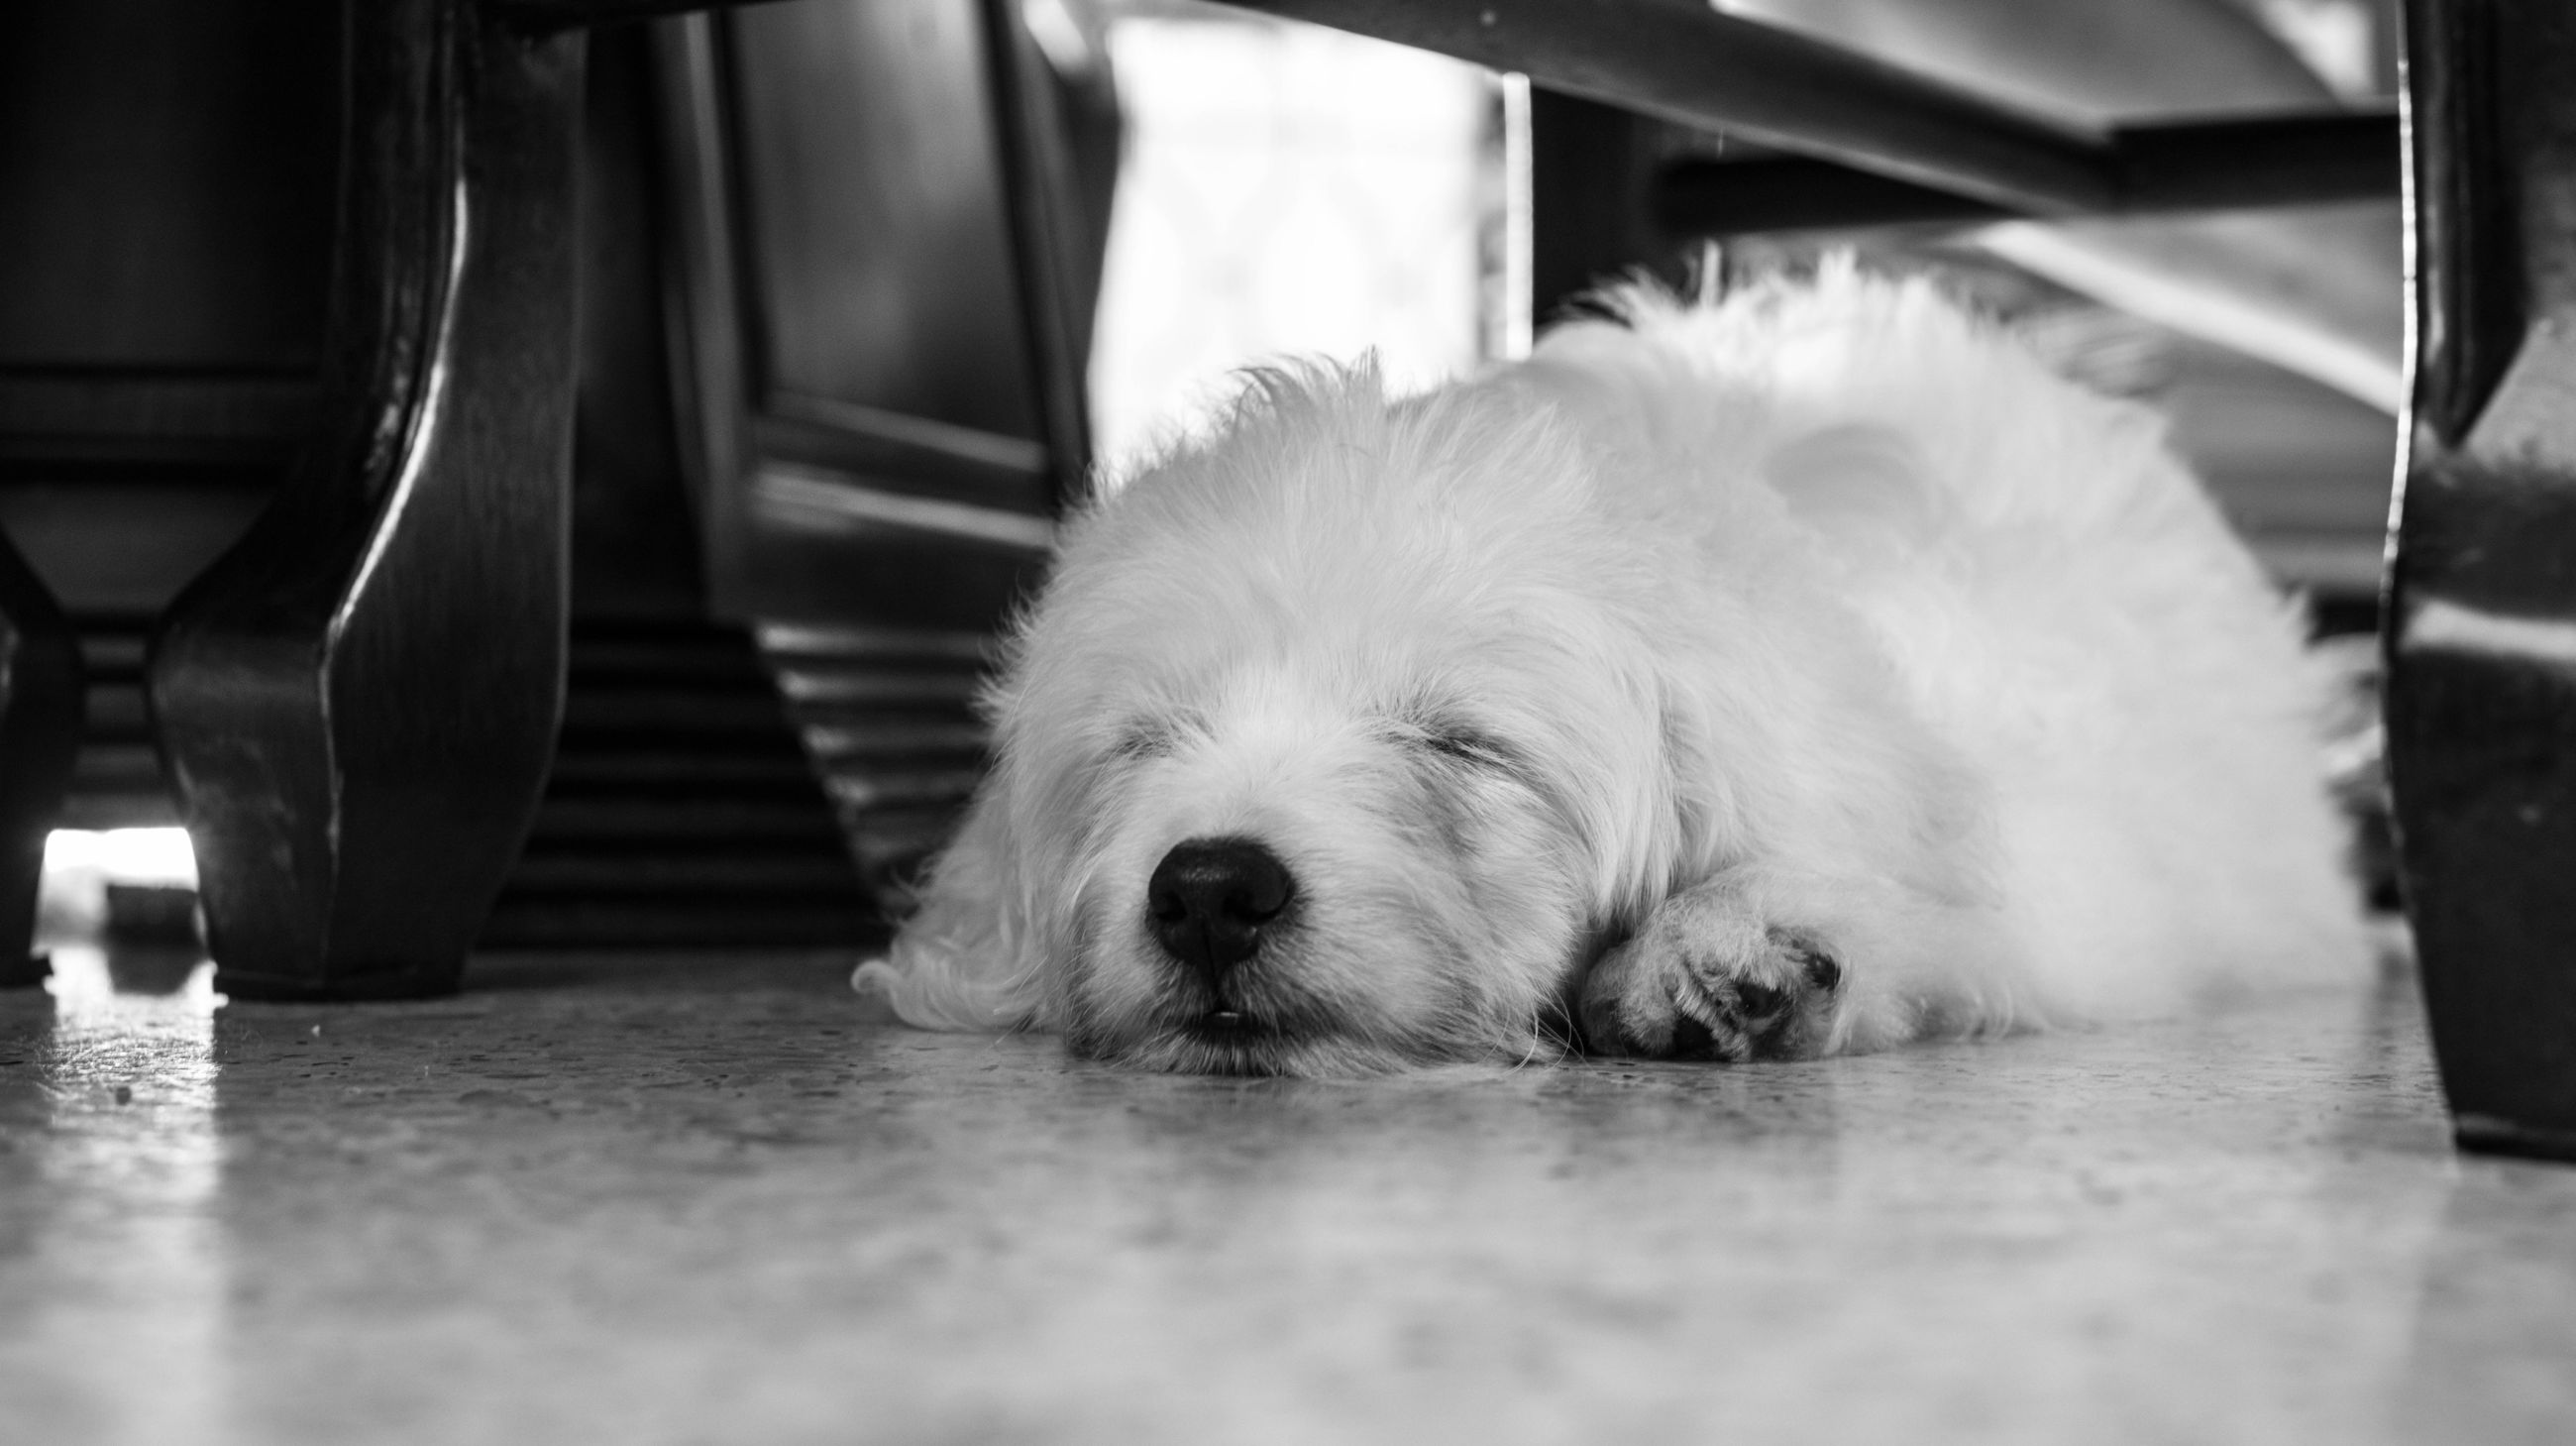 domestic animals, pets, animal themes, dog, indoors, one animal, mammal, relaxation, resting, animal head, close-up, selective focus, sleeping, lying down, focus on foreground, white color, animal body part, home interior, no people, comfortable